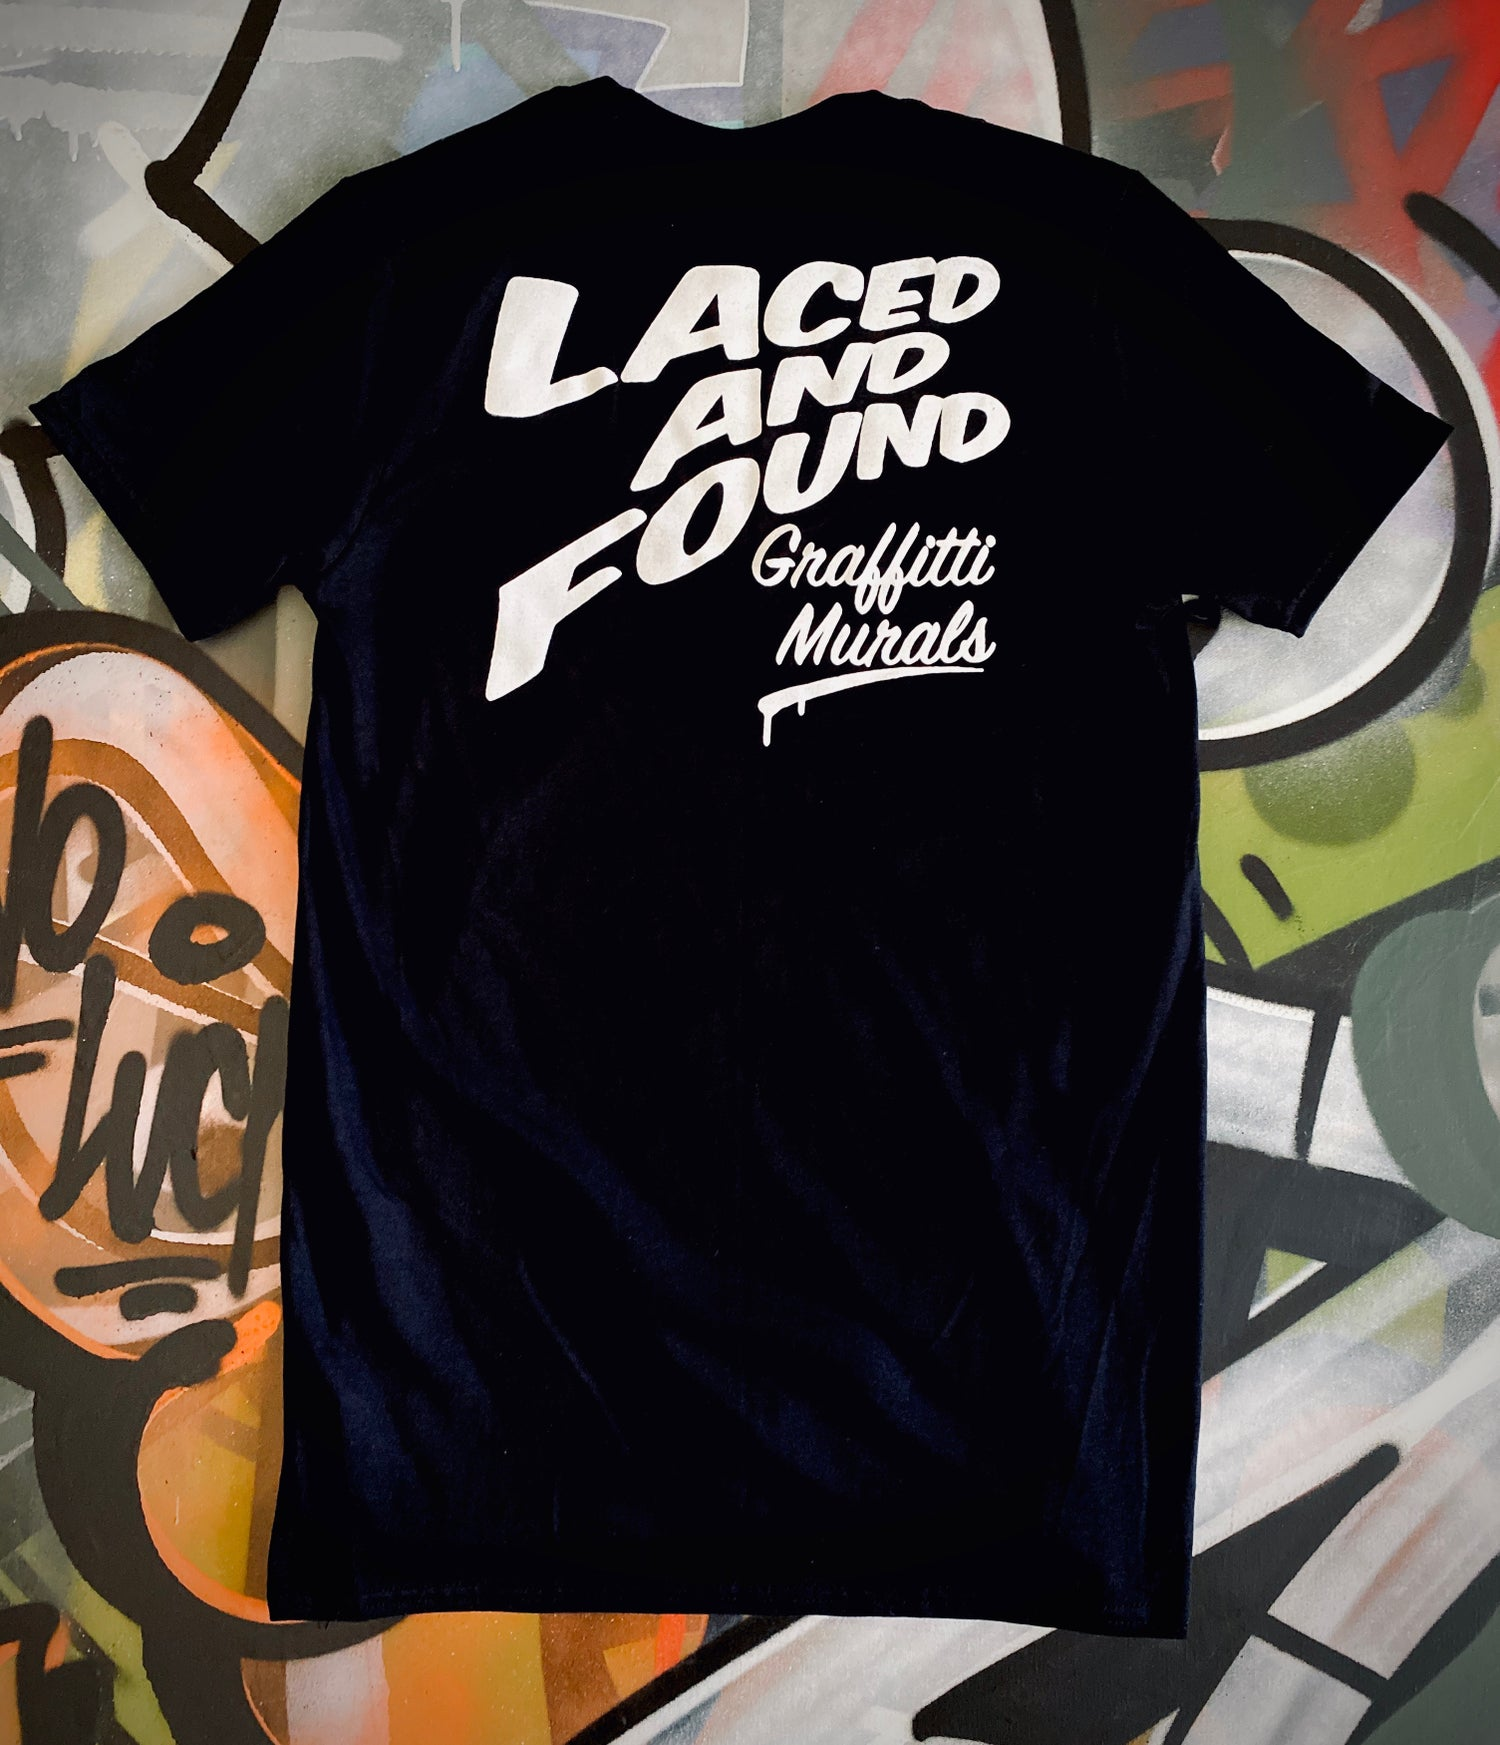 Image of LACED AND FOUND SIGN MURALS TEE